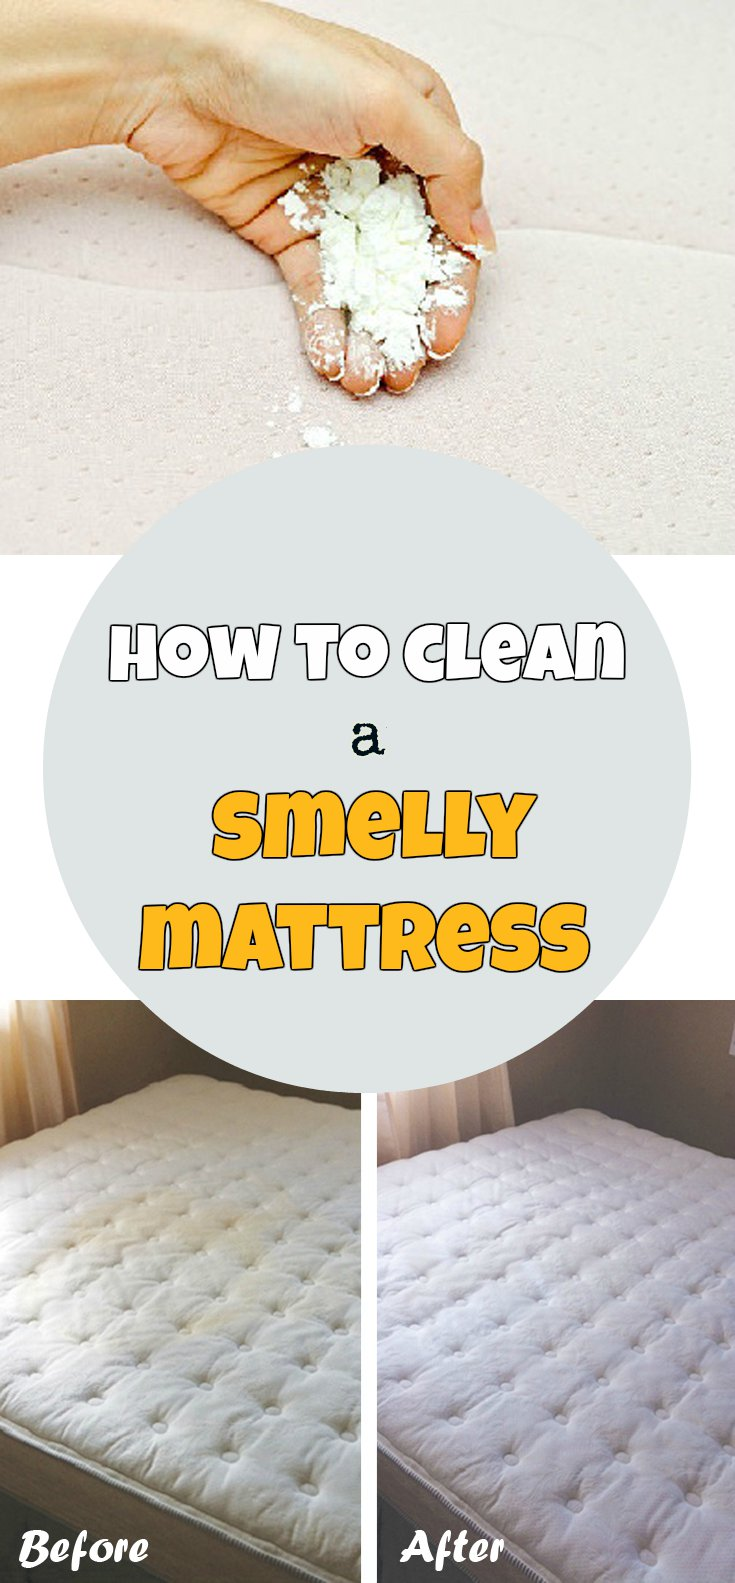 How to clean a smelly mattress CleaningTips